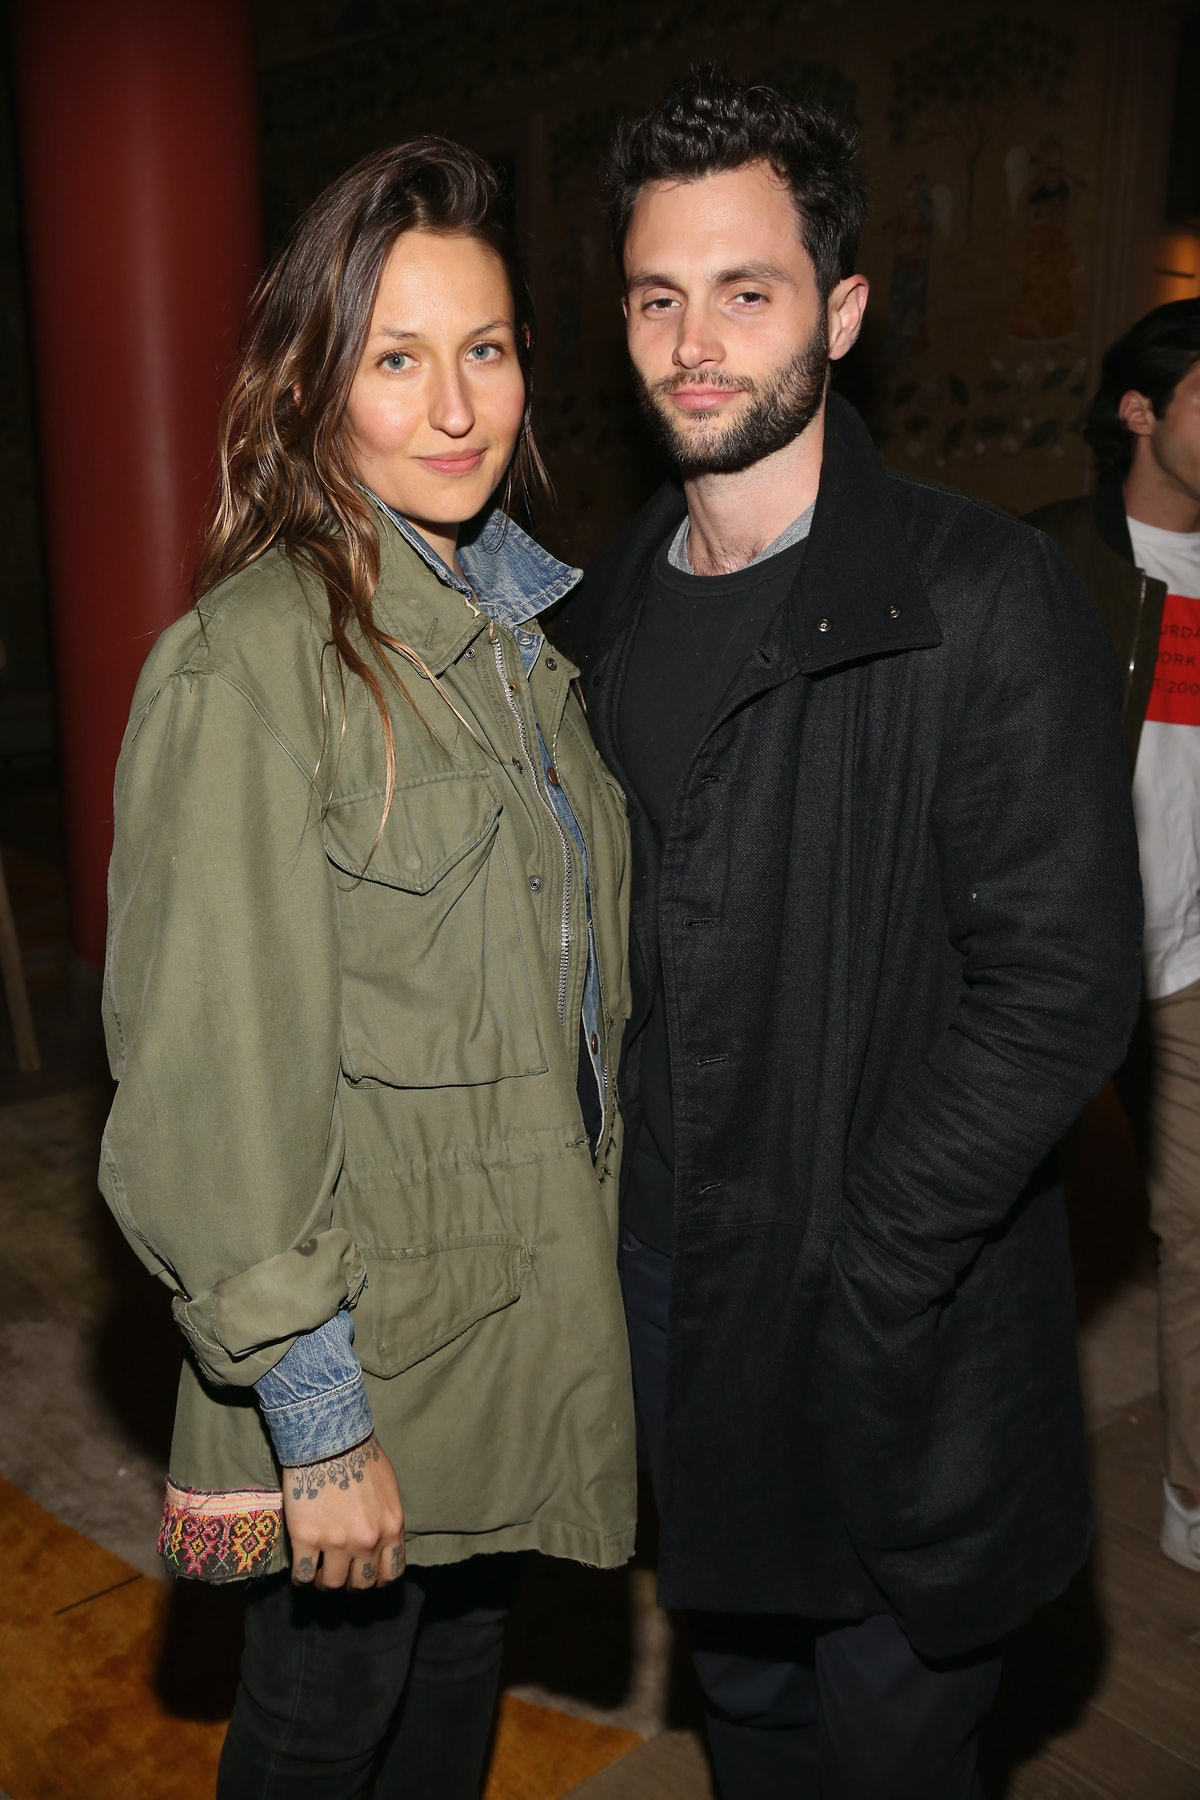 NEW YORK, NY - APRIL 30: Domino Kirke and Penn Badgley attend The Weinstein Company and Lyft host a ...